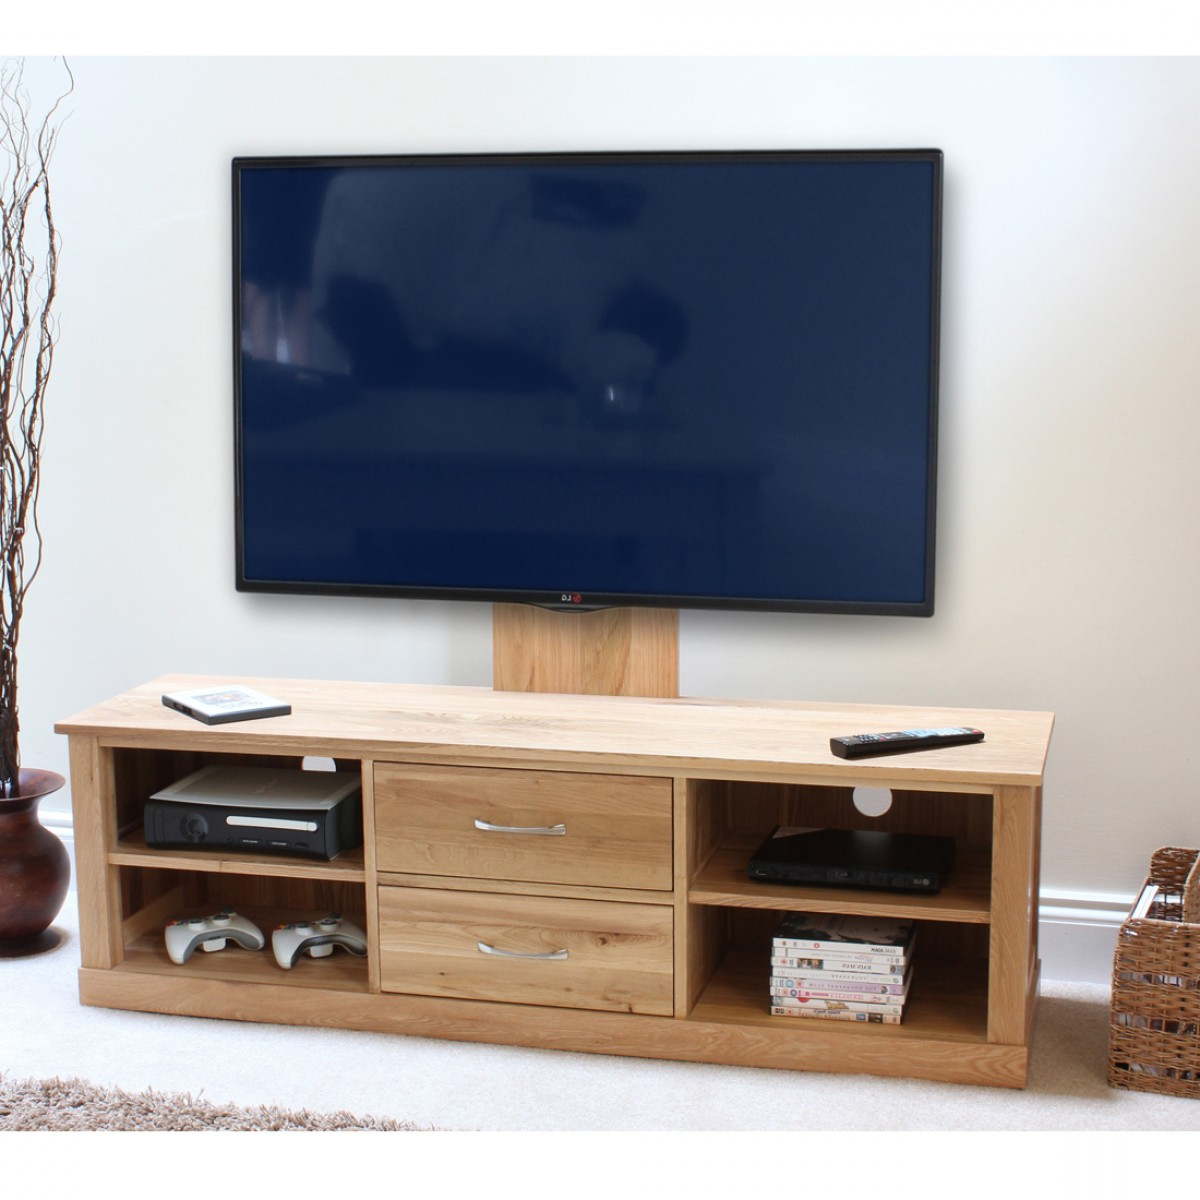 Baumhaus Mobel Oak Widescreen Tv Cabinet & Mounted Adjustable With Preferred Oak Widescreen Tv Units (View 10 of 20)